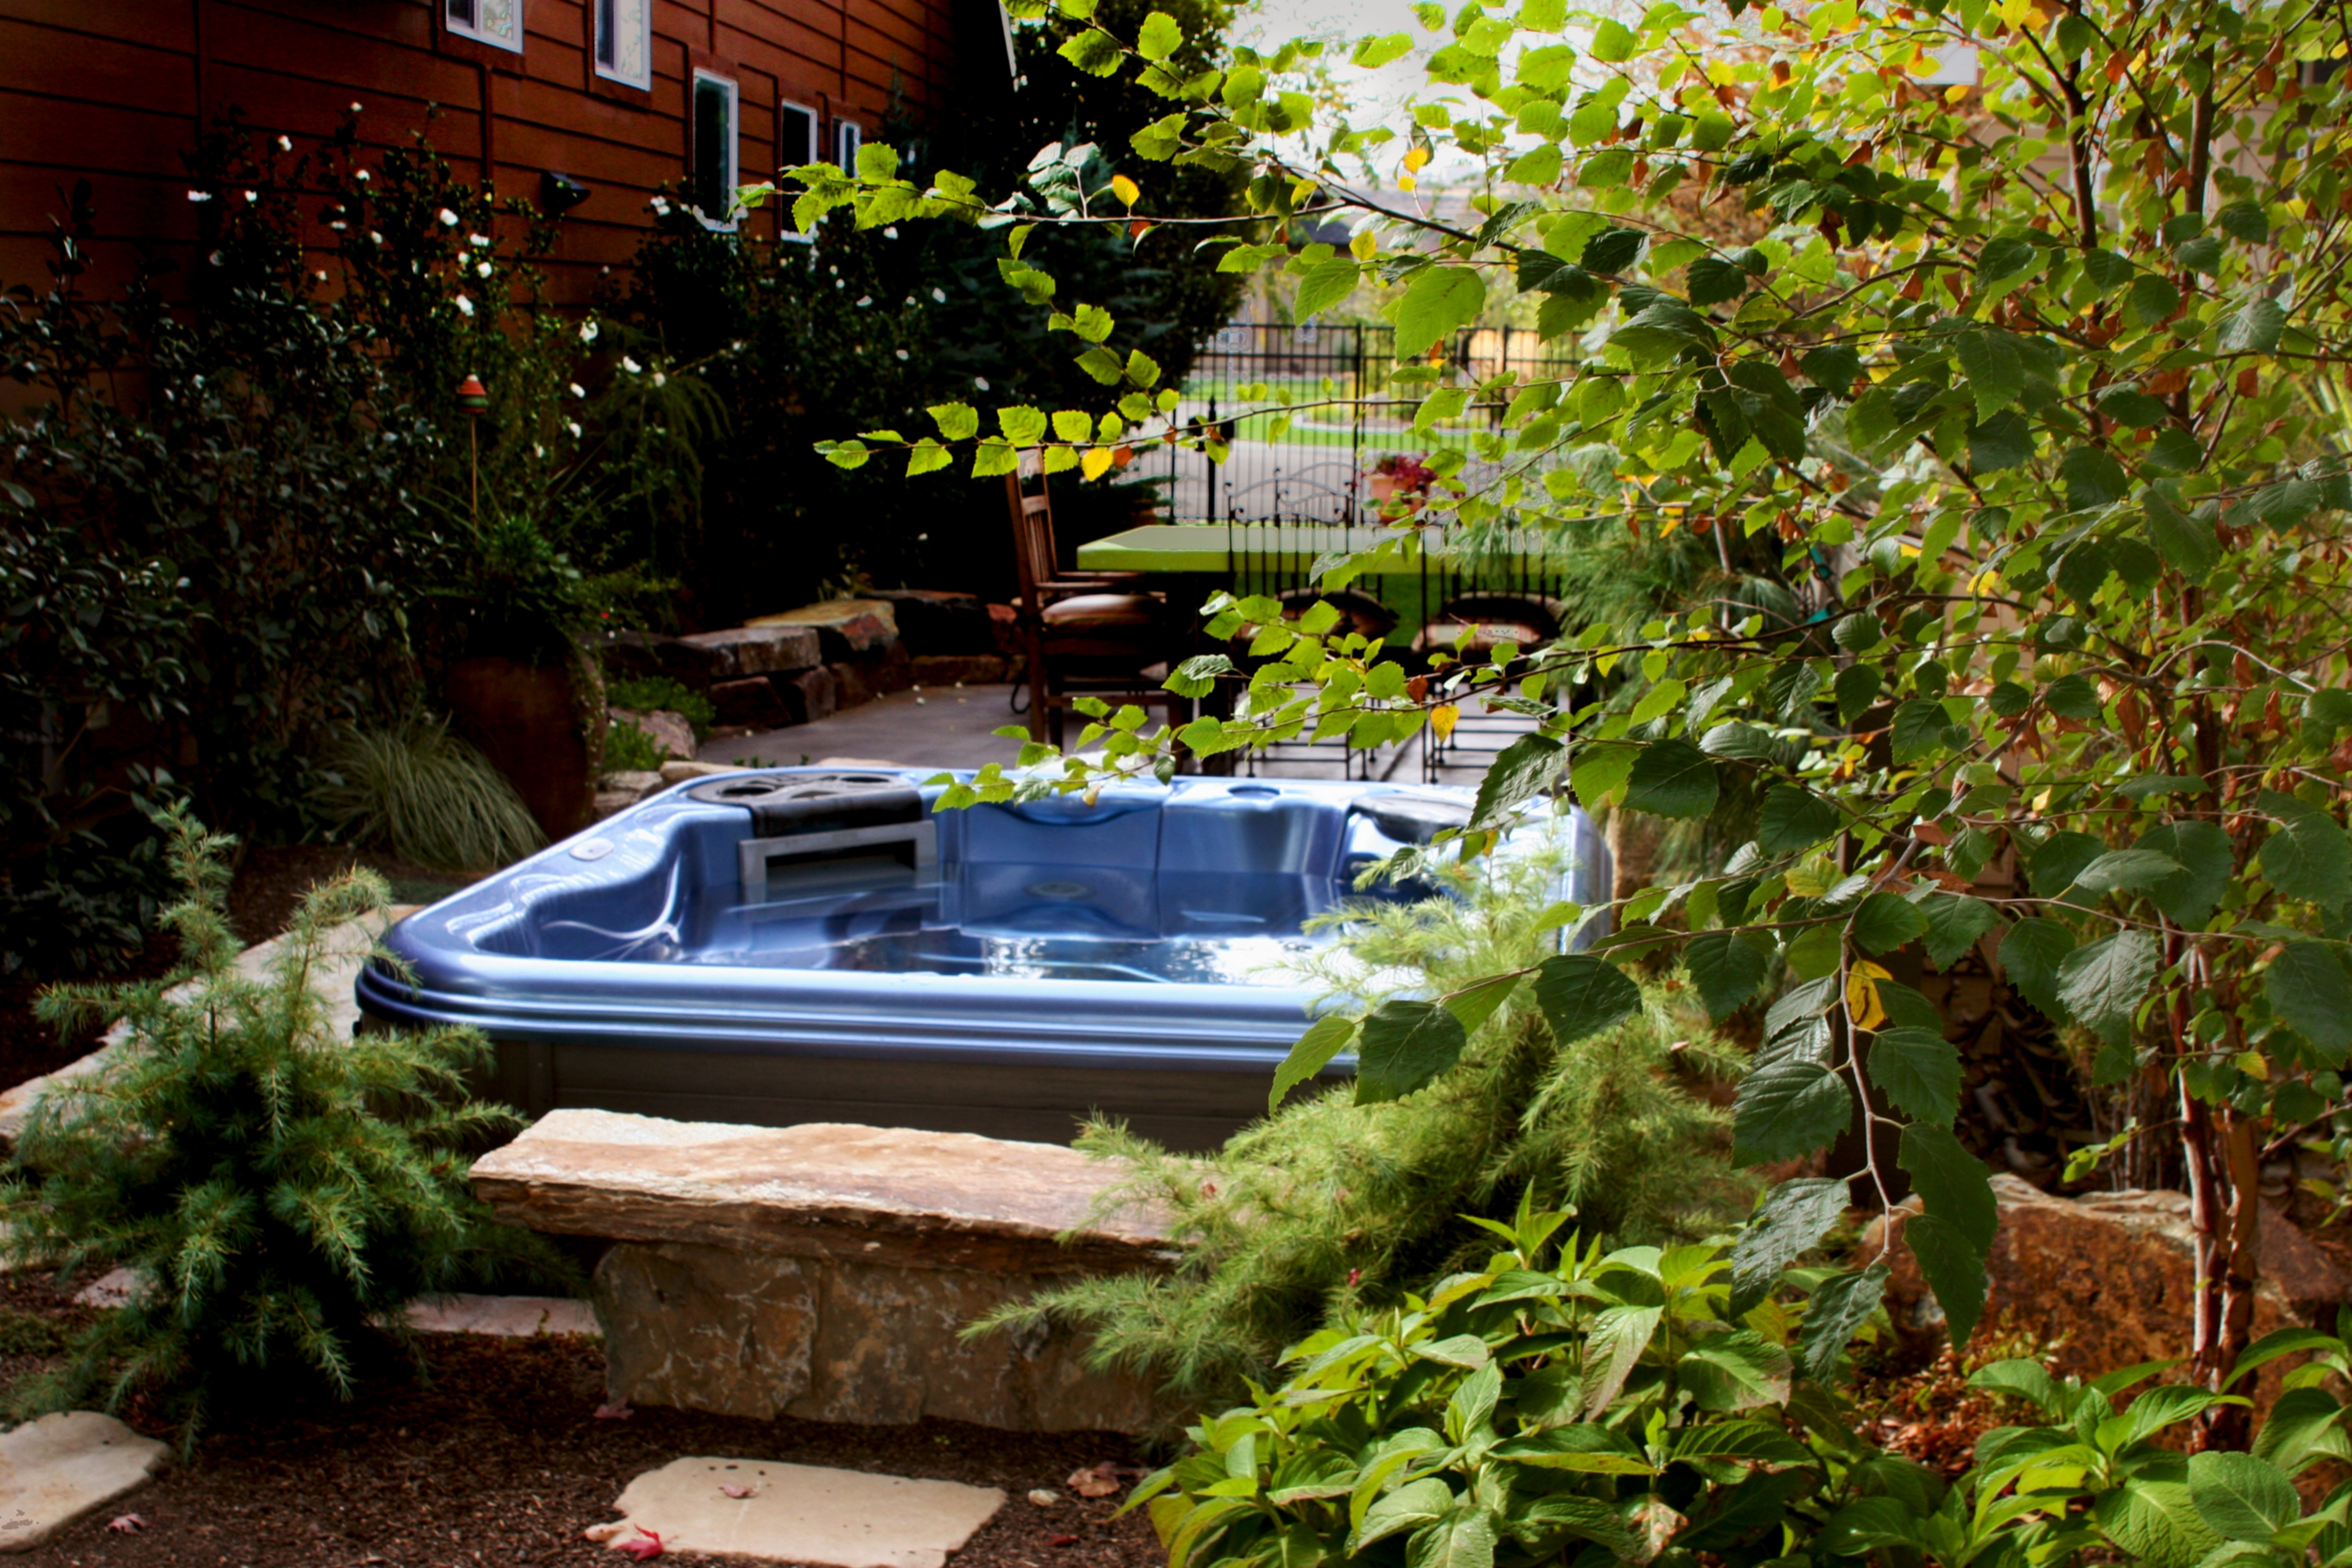 Intimate Spa Backyard Sanctuary | The Garden Artist Boise, ID